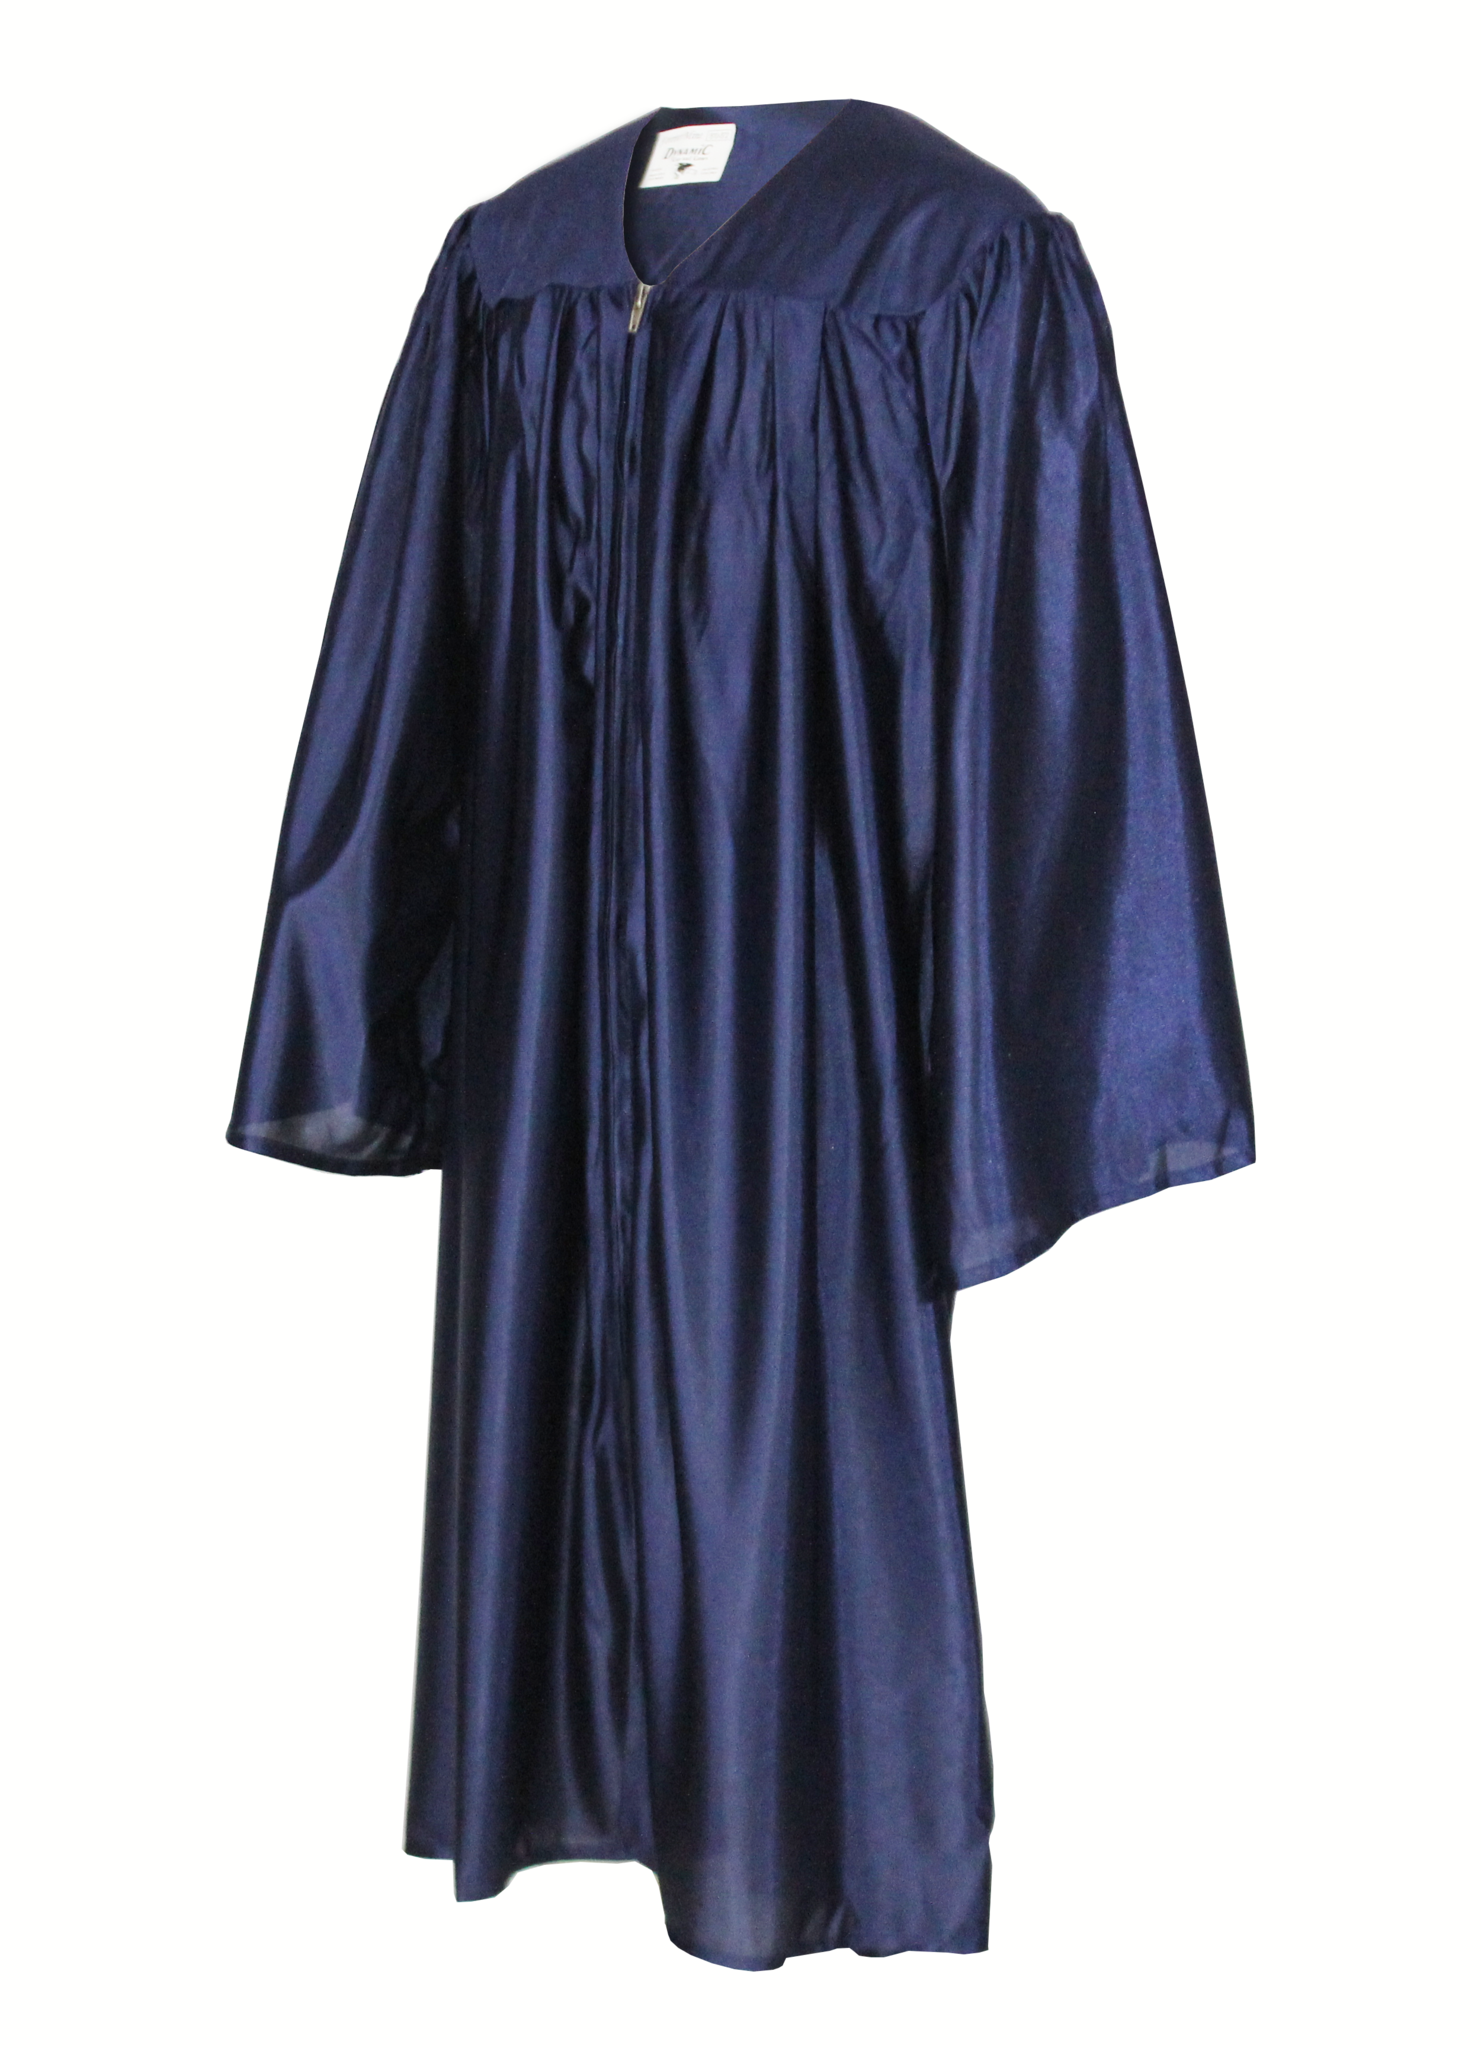 Shiny Navy Choir Gown